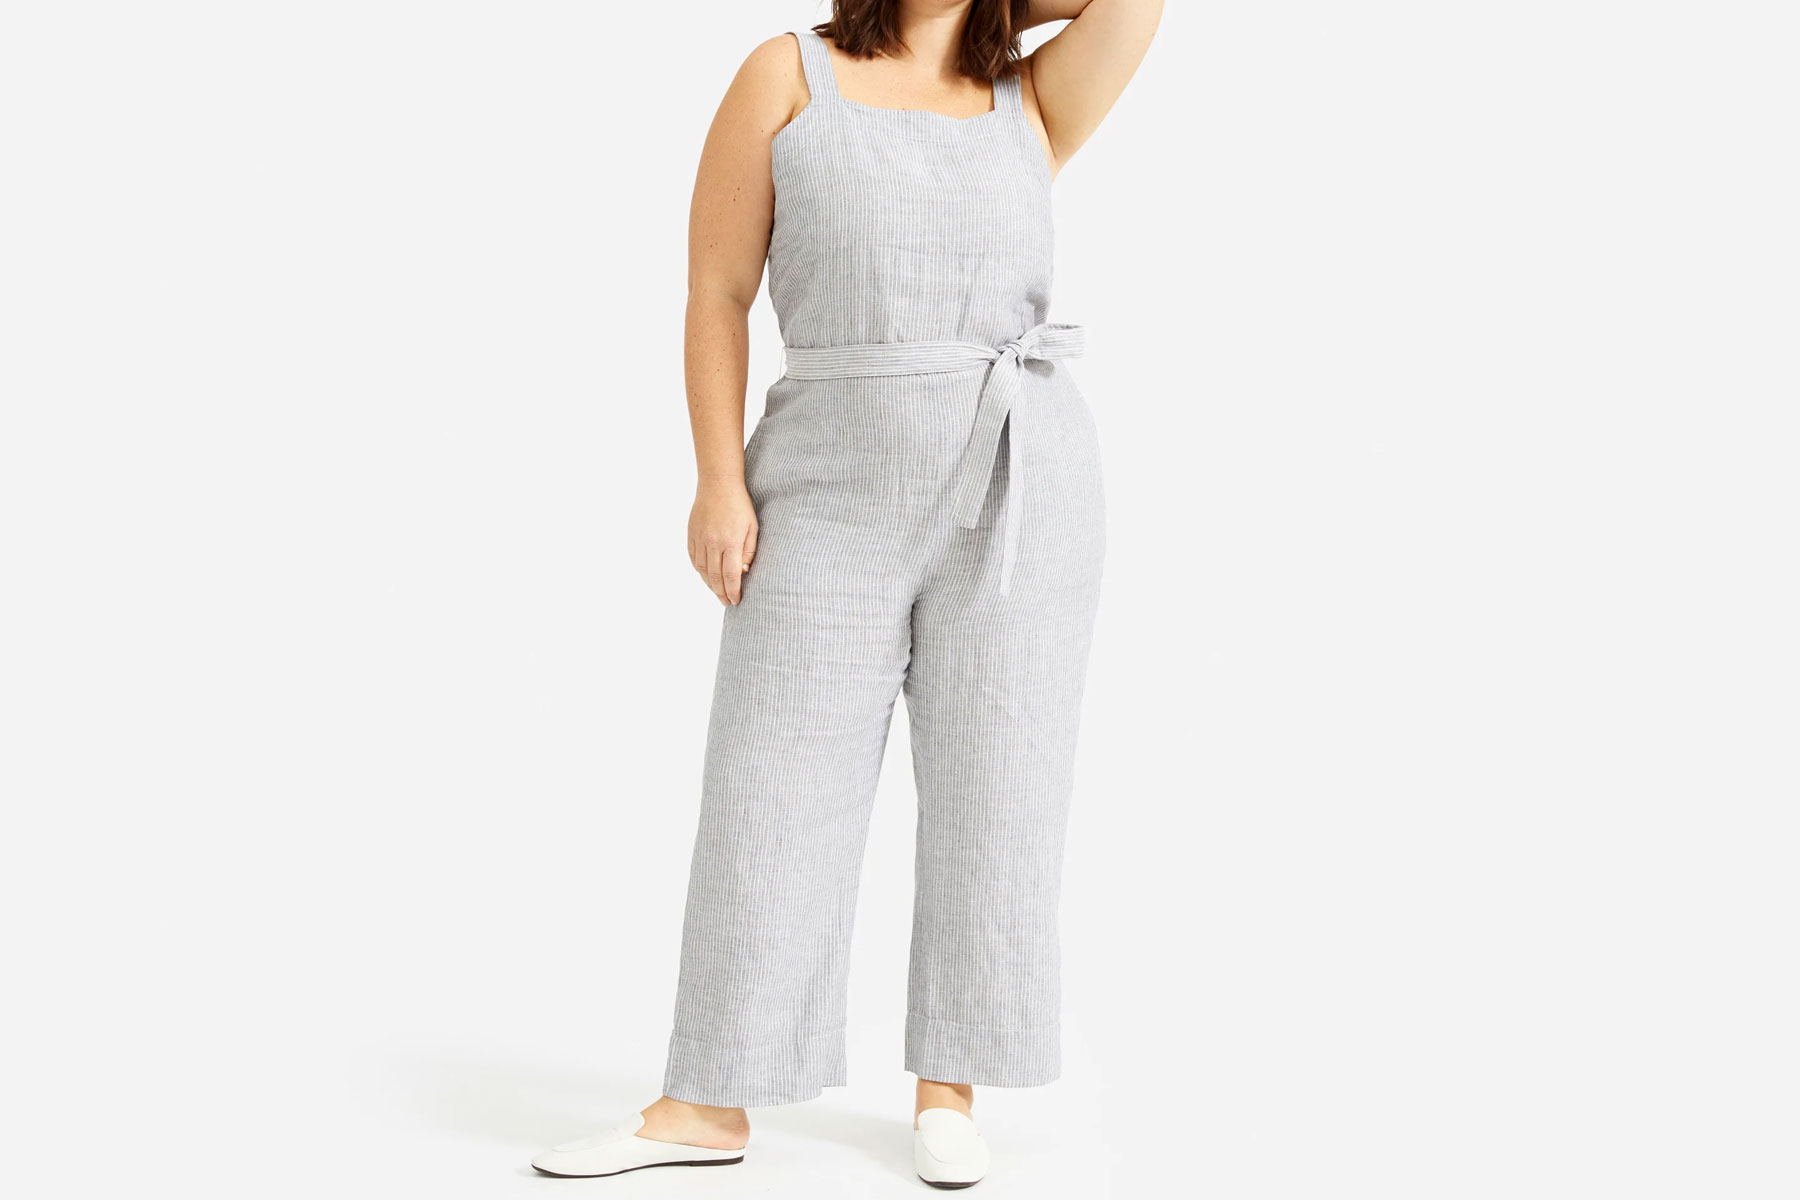 Women's grey and white striped jumpsuit